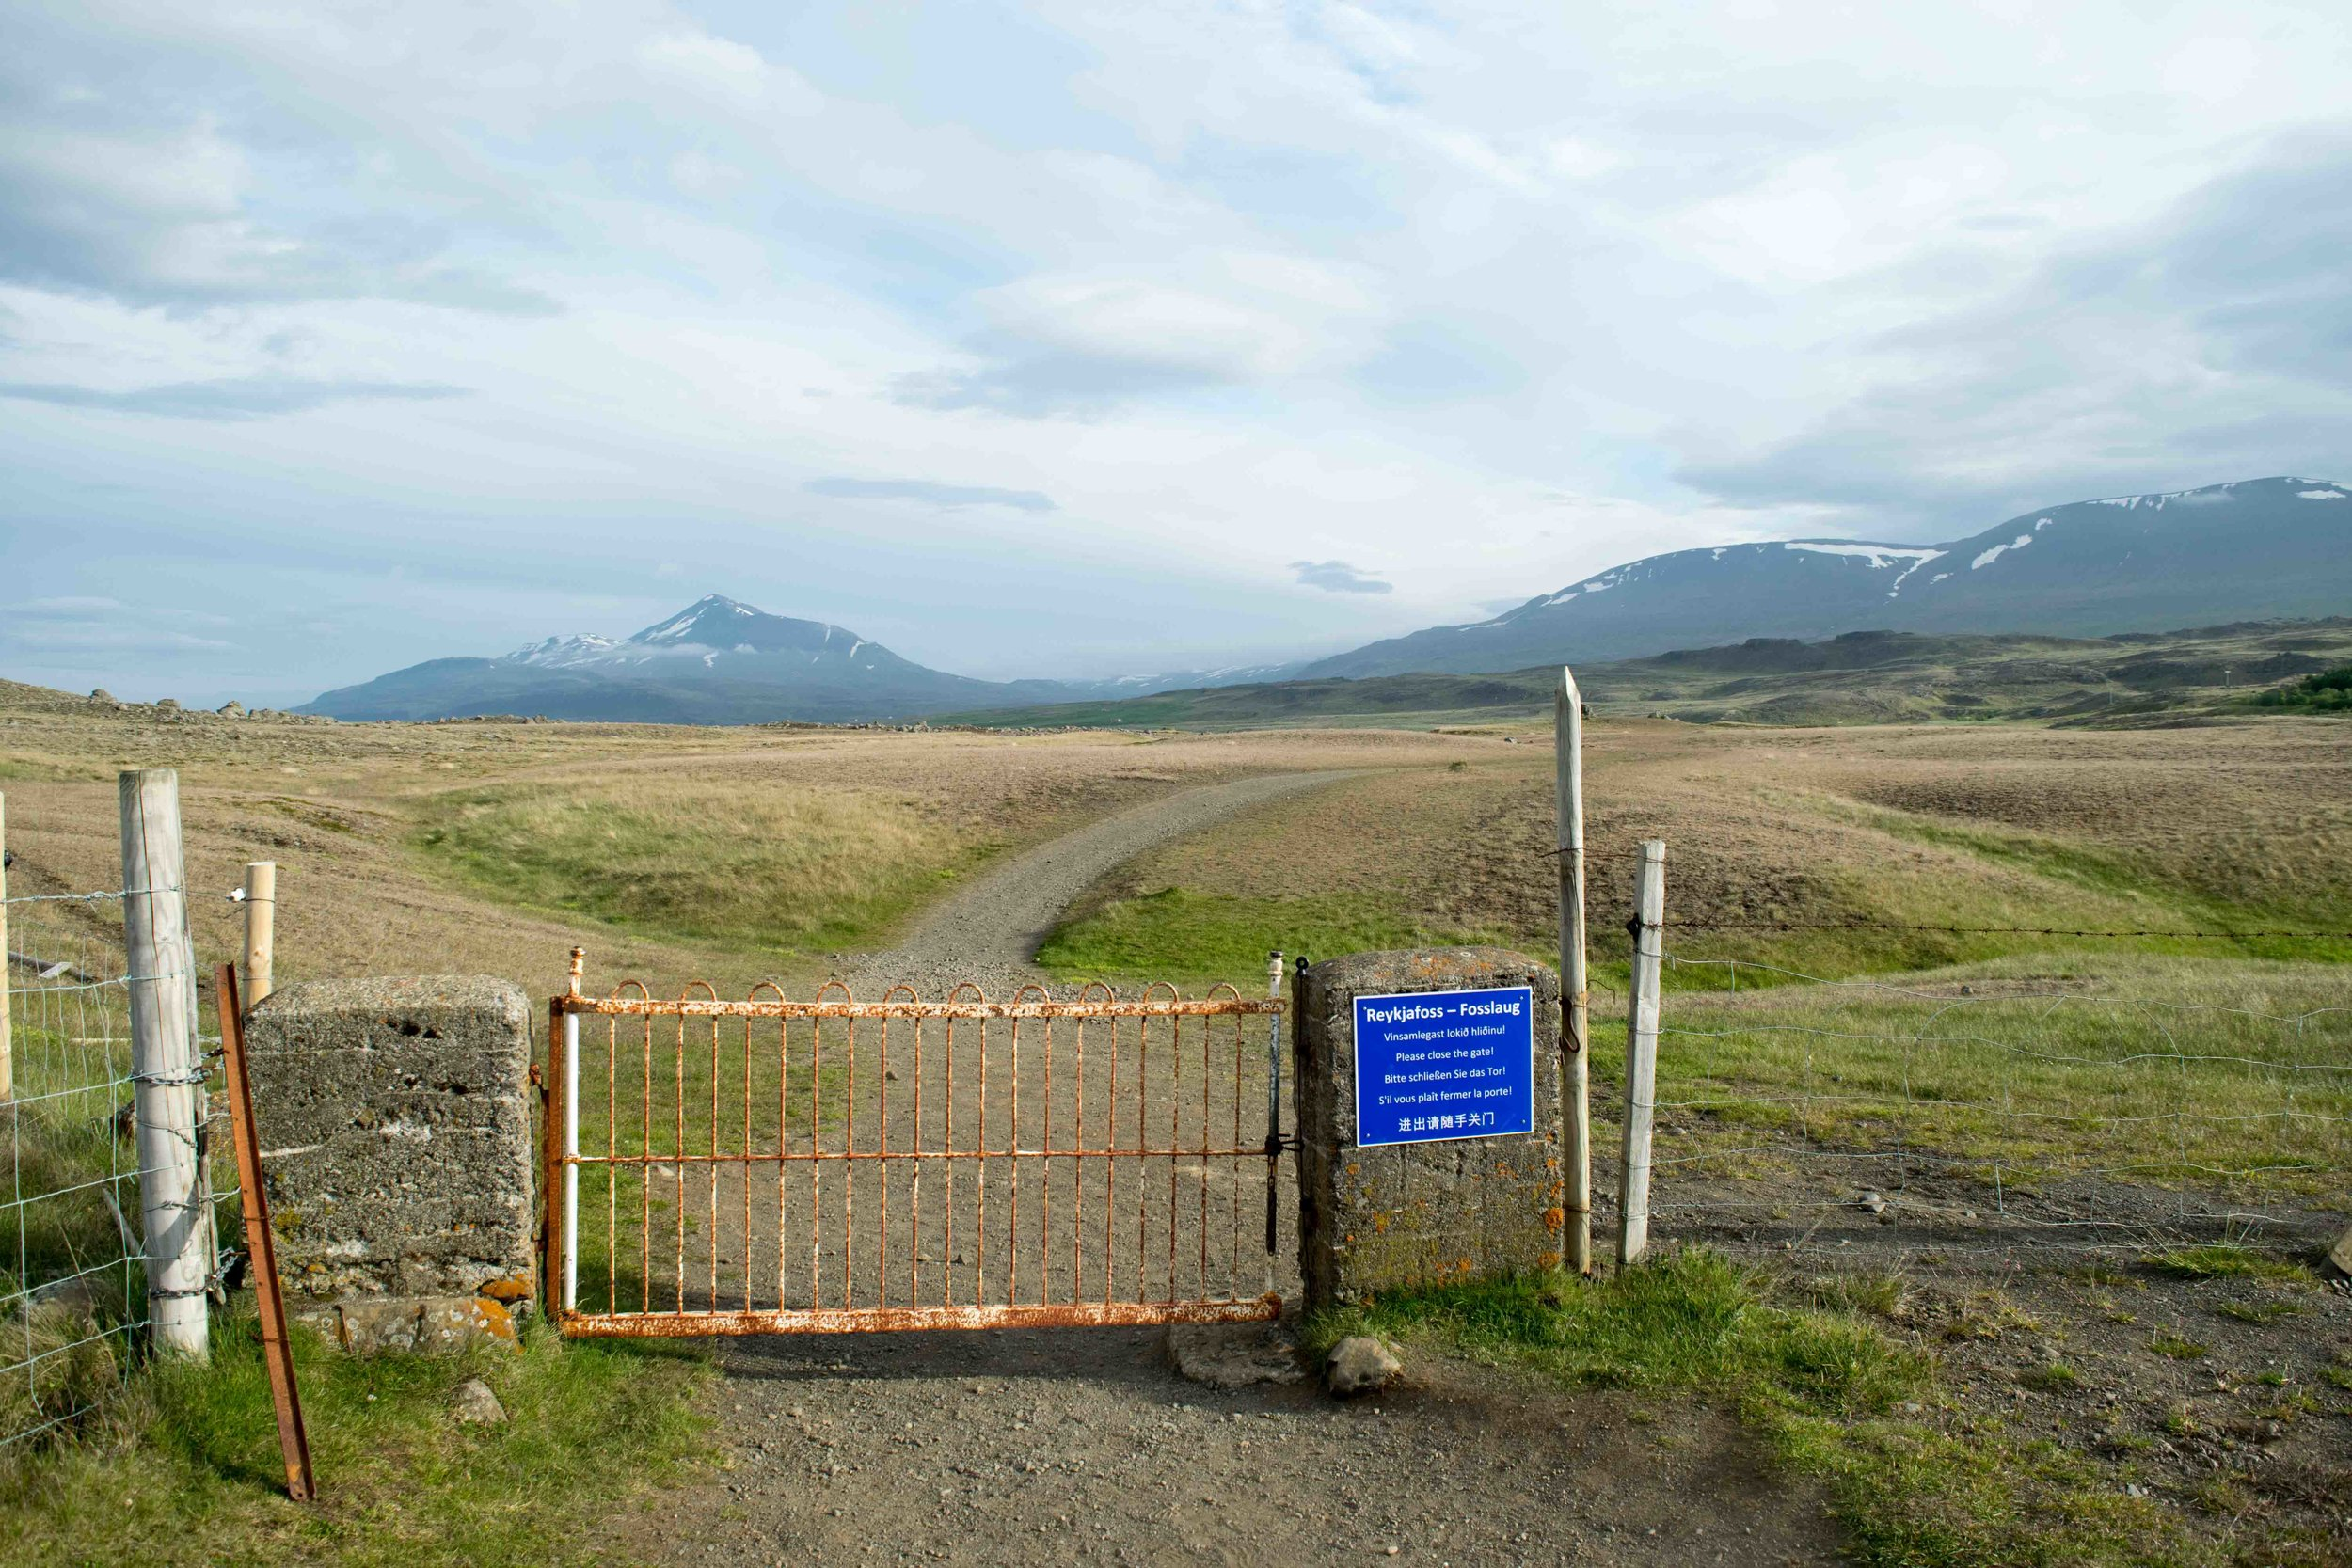 The beginning of the trail is marked by a gate. It is fine to go through, this is for the horses.